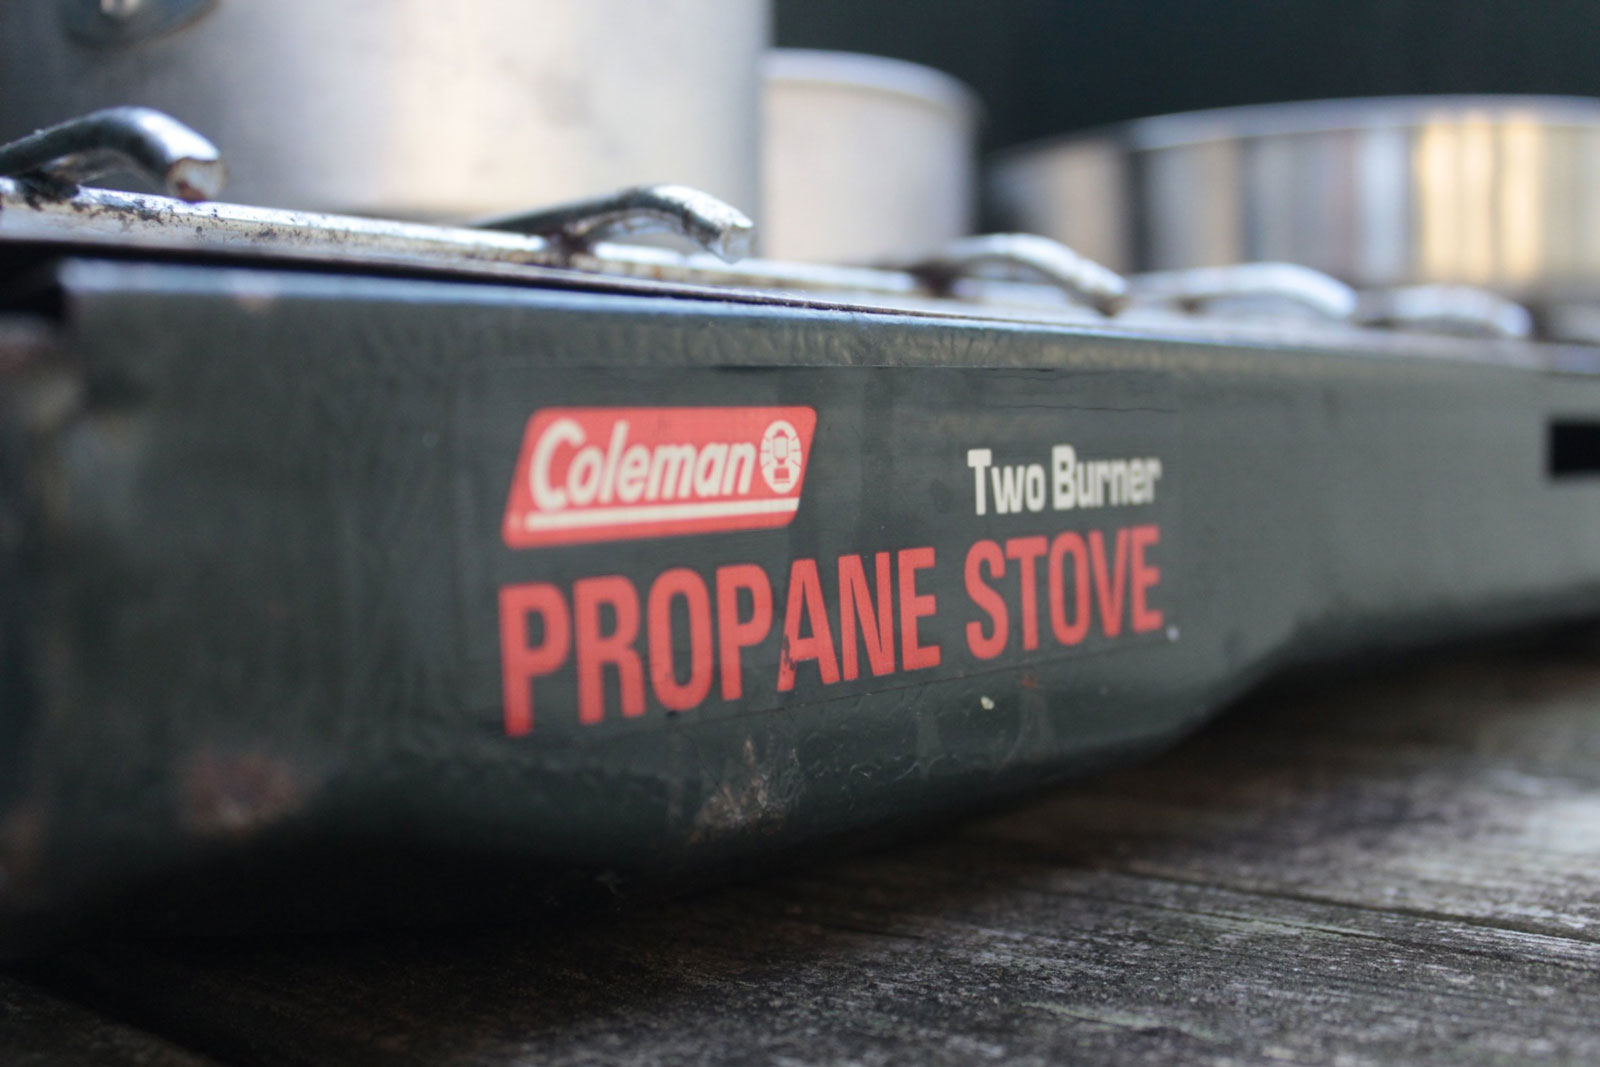 Close up photo of a Coleman Propane Gas stove at a campsite